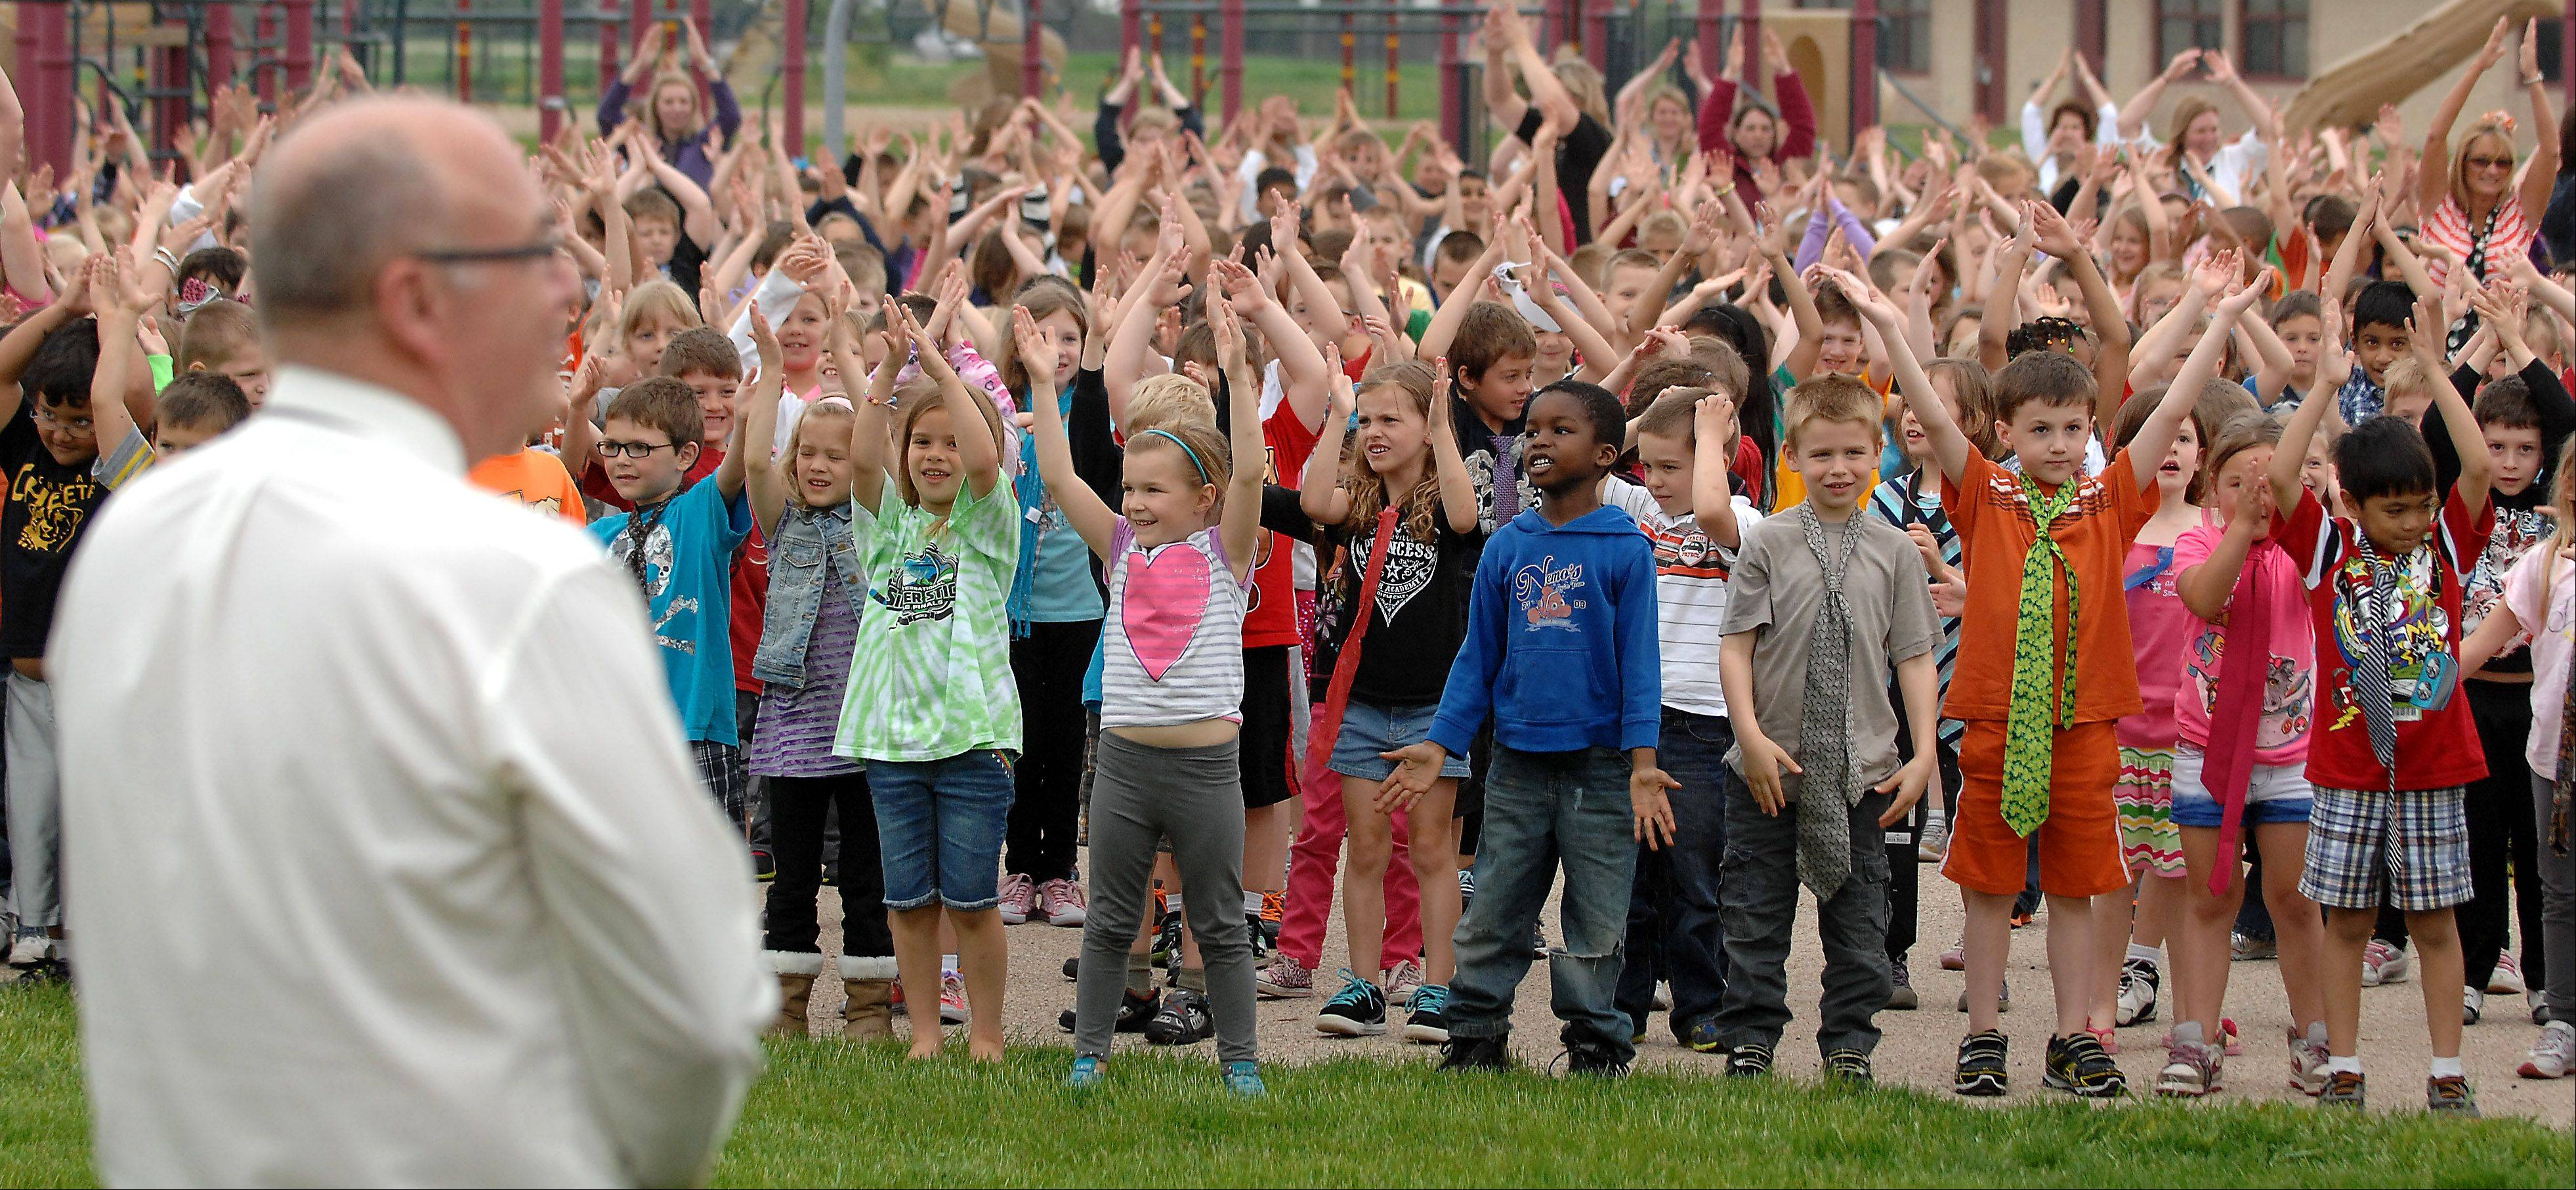 Over 1100 kindergarten, 1st and 2nd-graders perform a surprise song and dance number for retiring principal Chuck Lamb at Chesak Elementary School in Lake in the Hills Tuesday. A whole-school photo had been scheduled and the performace was a surprise that the kids had been working on with their P.E. teachers for the past few weeks.